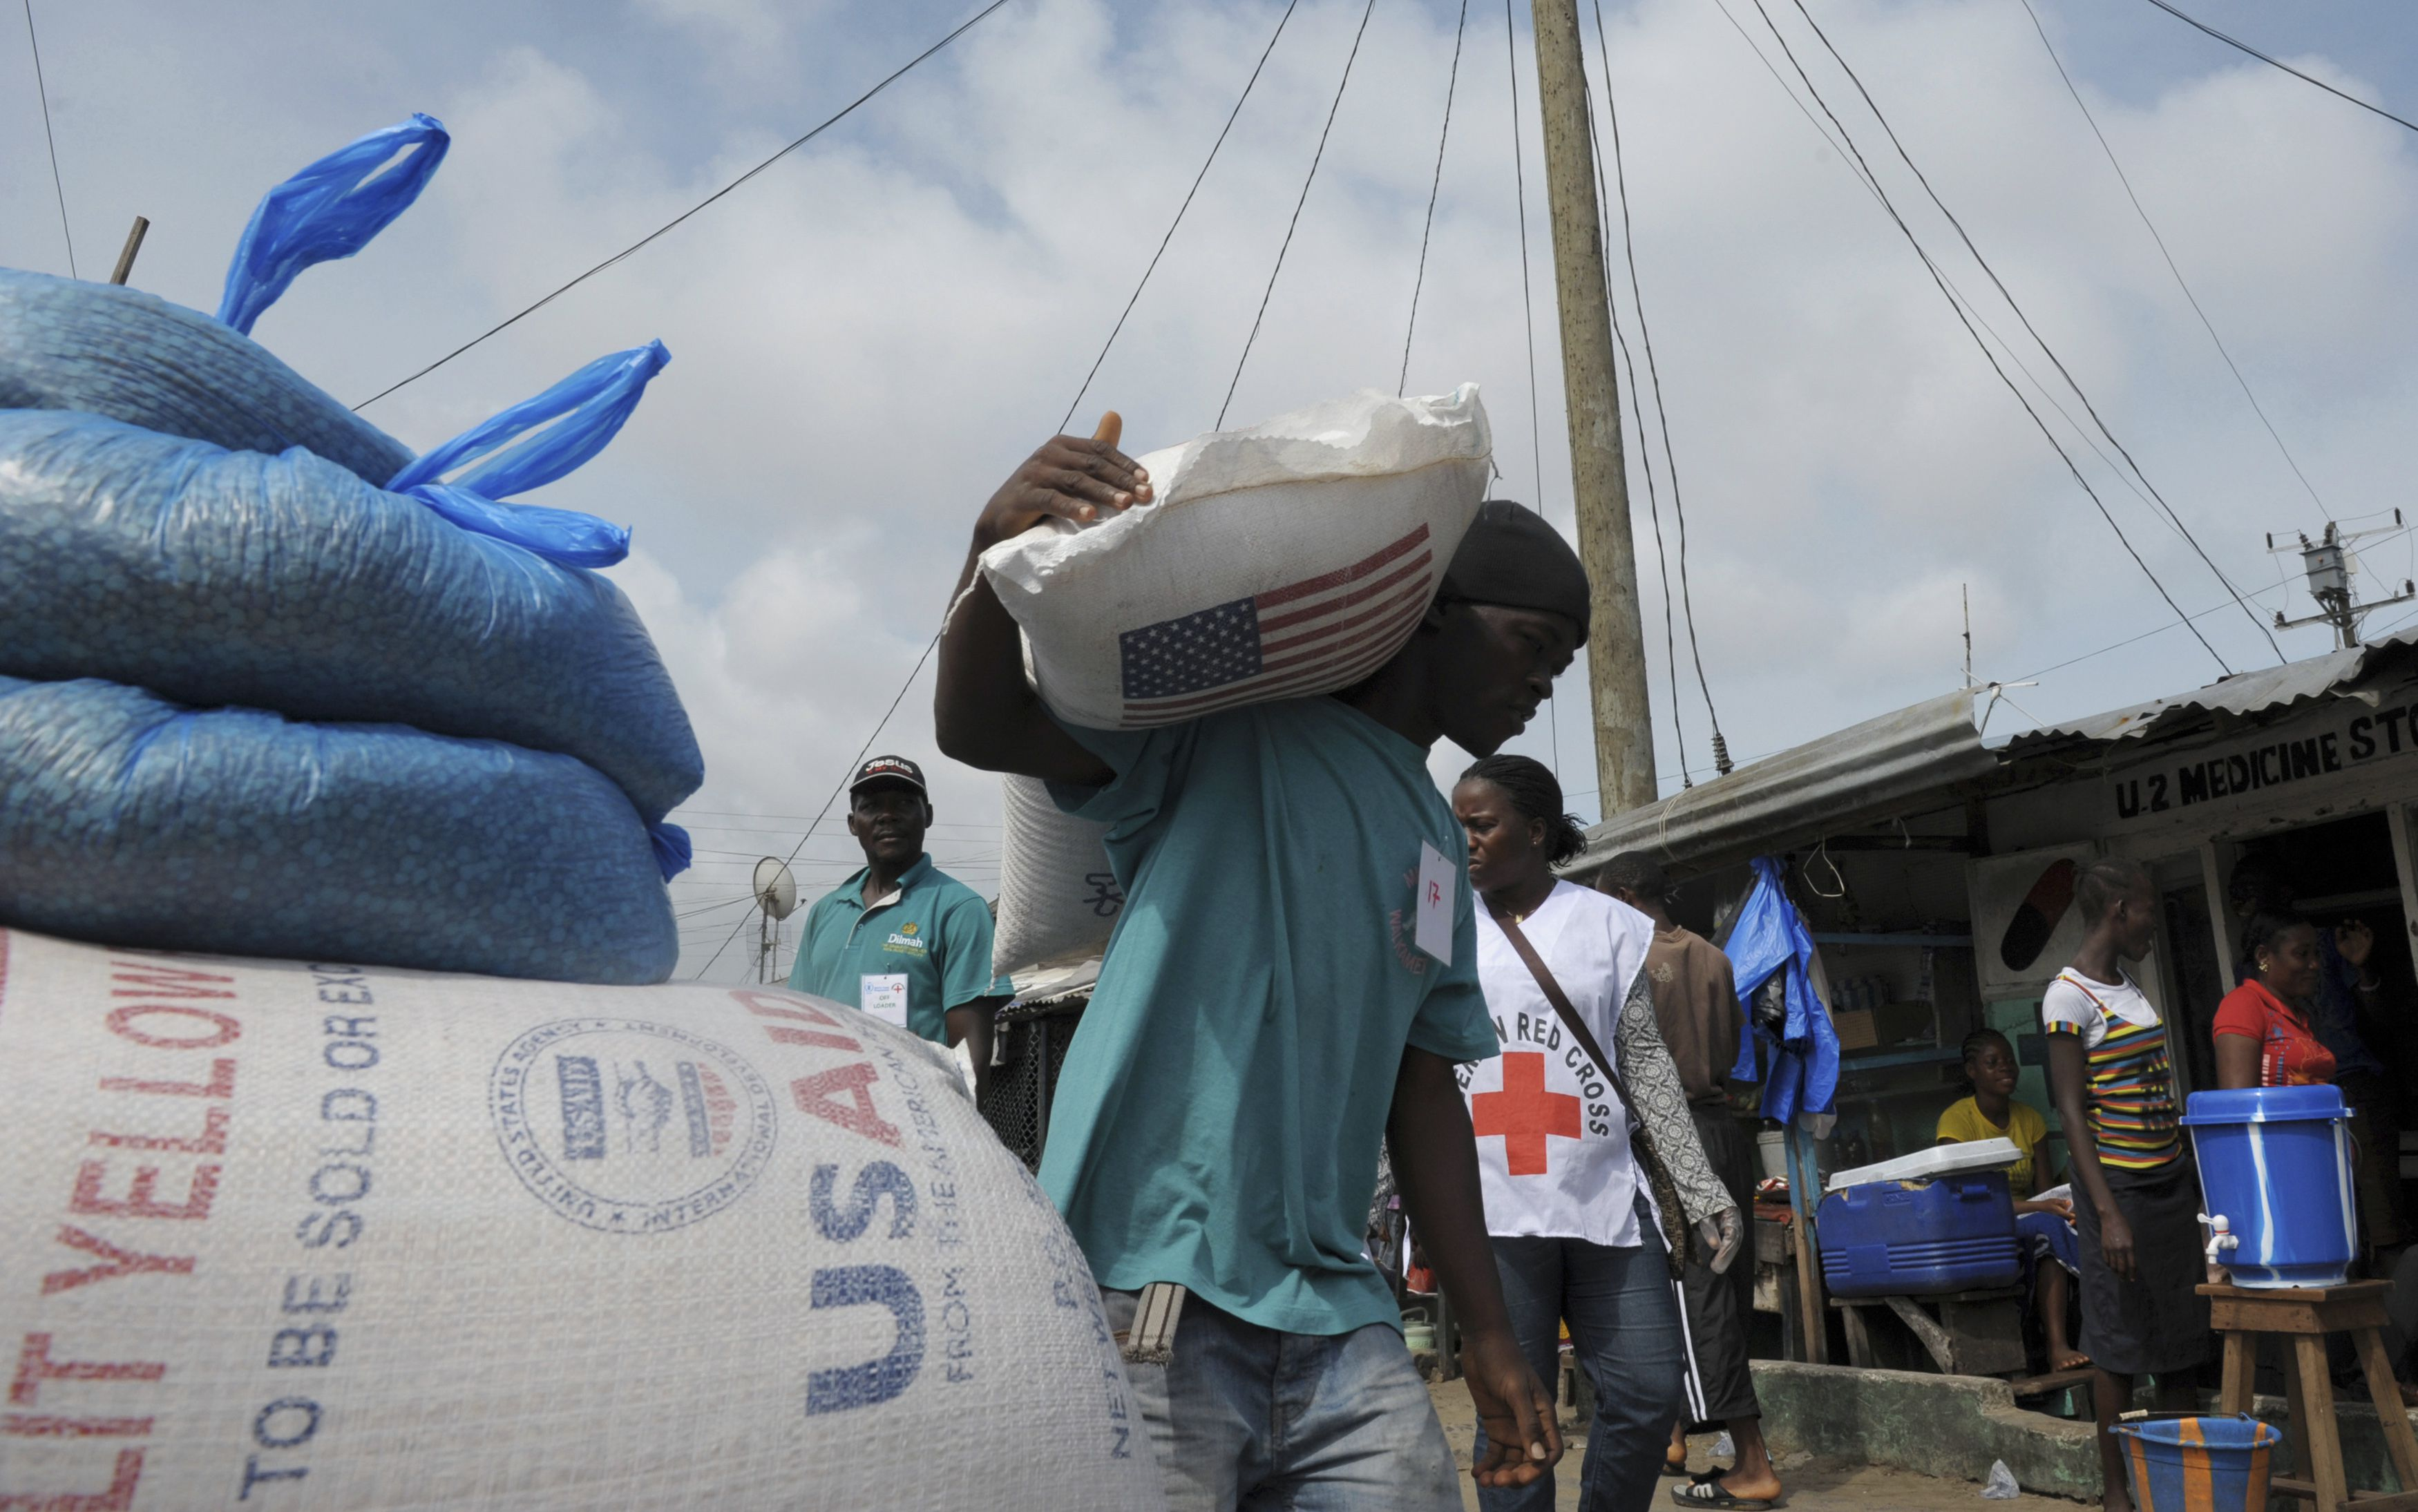 A resident of West Point neighbourhood, which has been quarantined following an outbreak of Ebola, carries a sack of food rations from the United Nations World Food Programme (WFP) in Monrovia August 28, 2014. Liberian authorities introduced a nationwide curfew last week and put the West Point neighbourhood under quarantine to curb the spread of the disease.             REUTERS/2Tango    (LIBERIA - Tags: HEALTH DISASTER SOCIETY) - RTR4469R